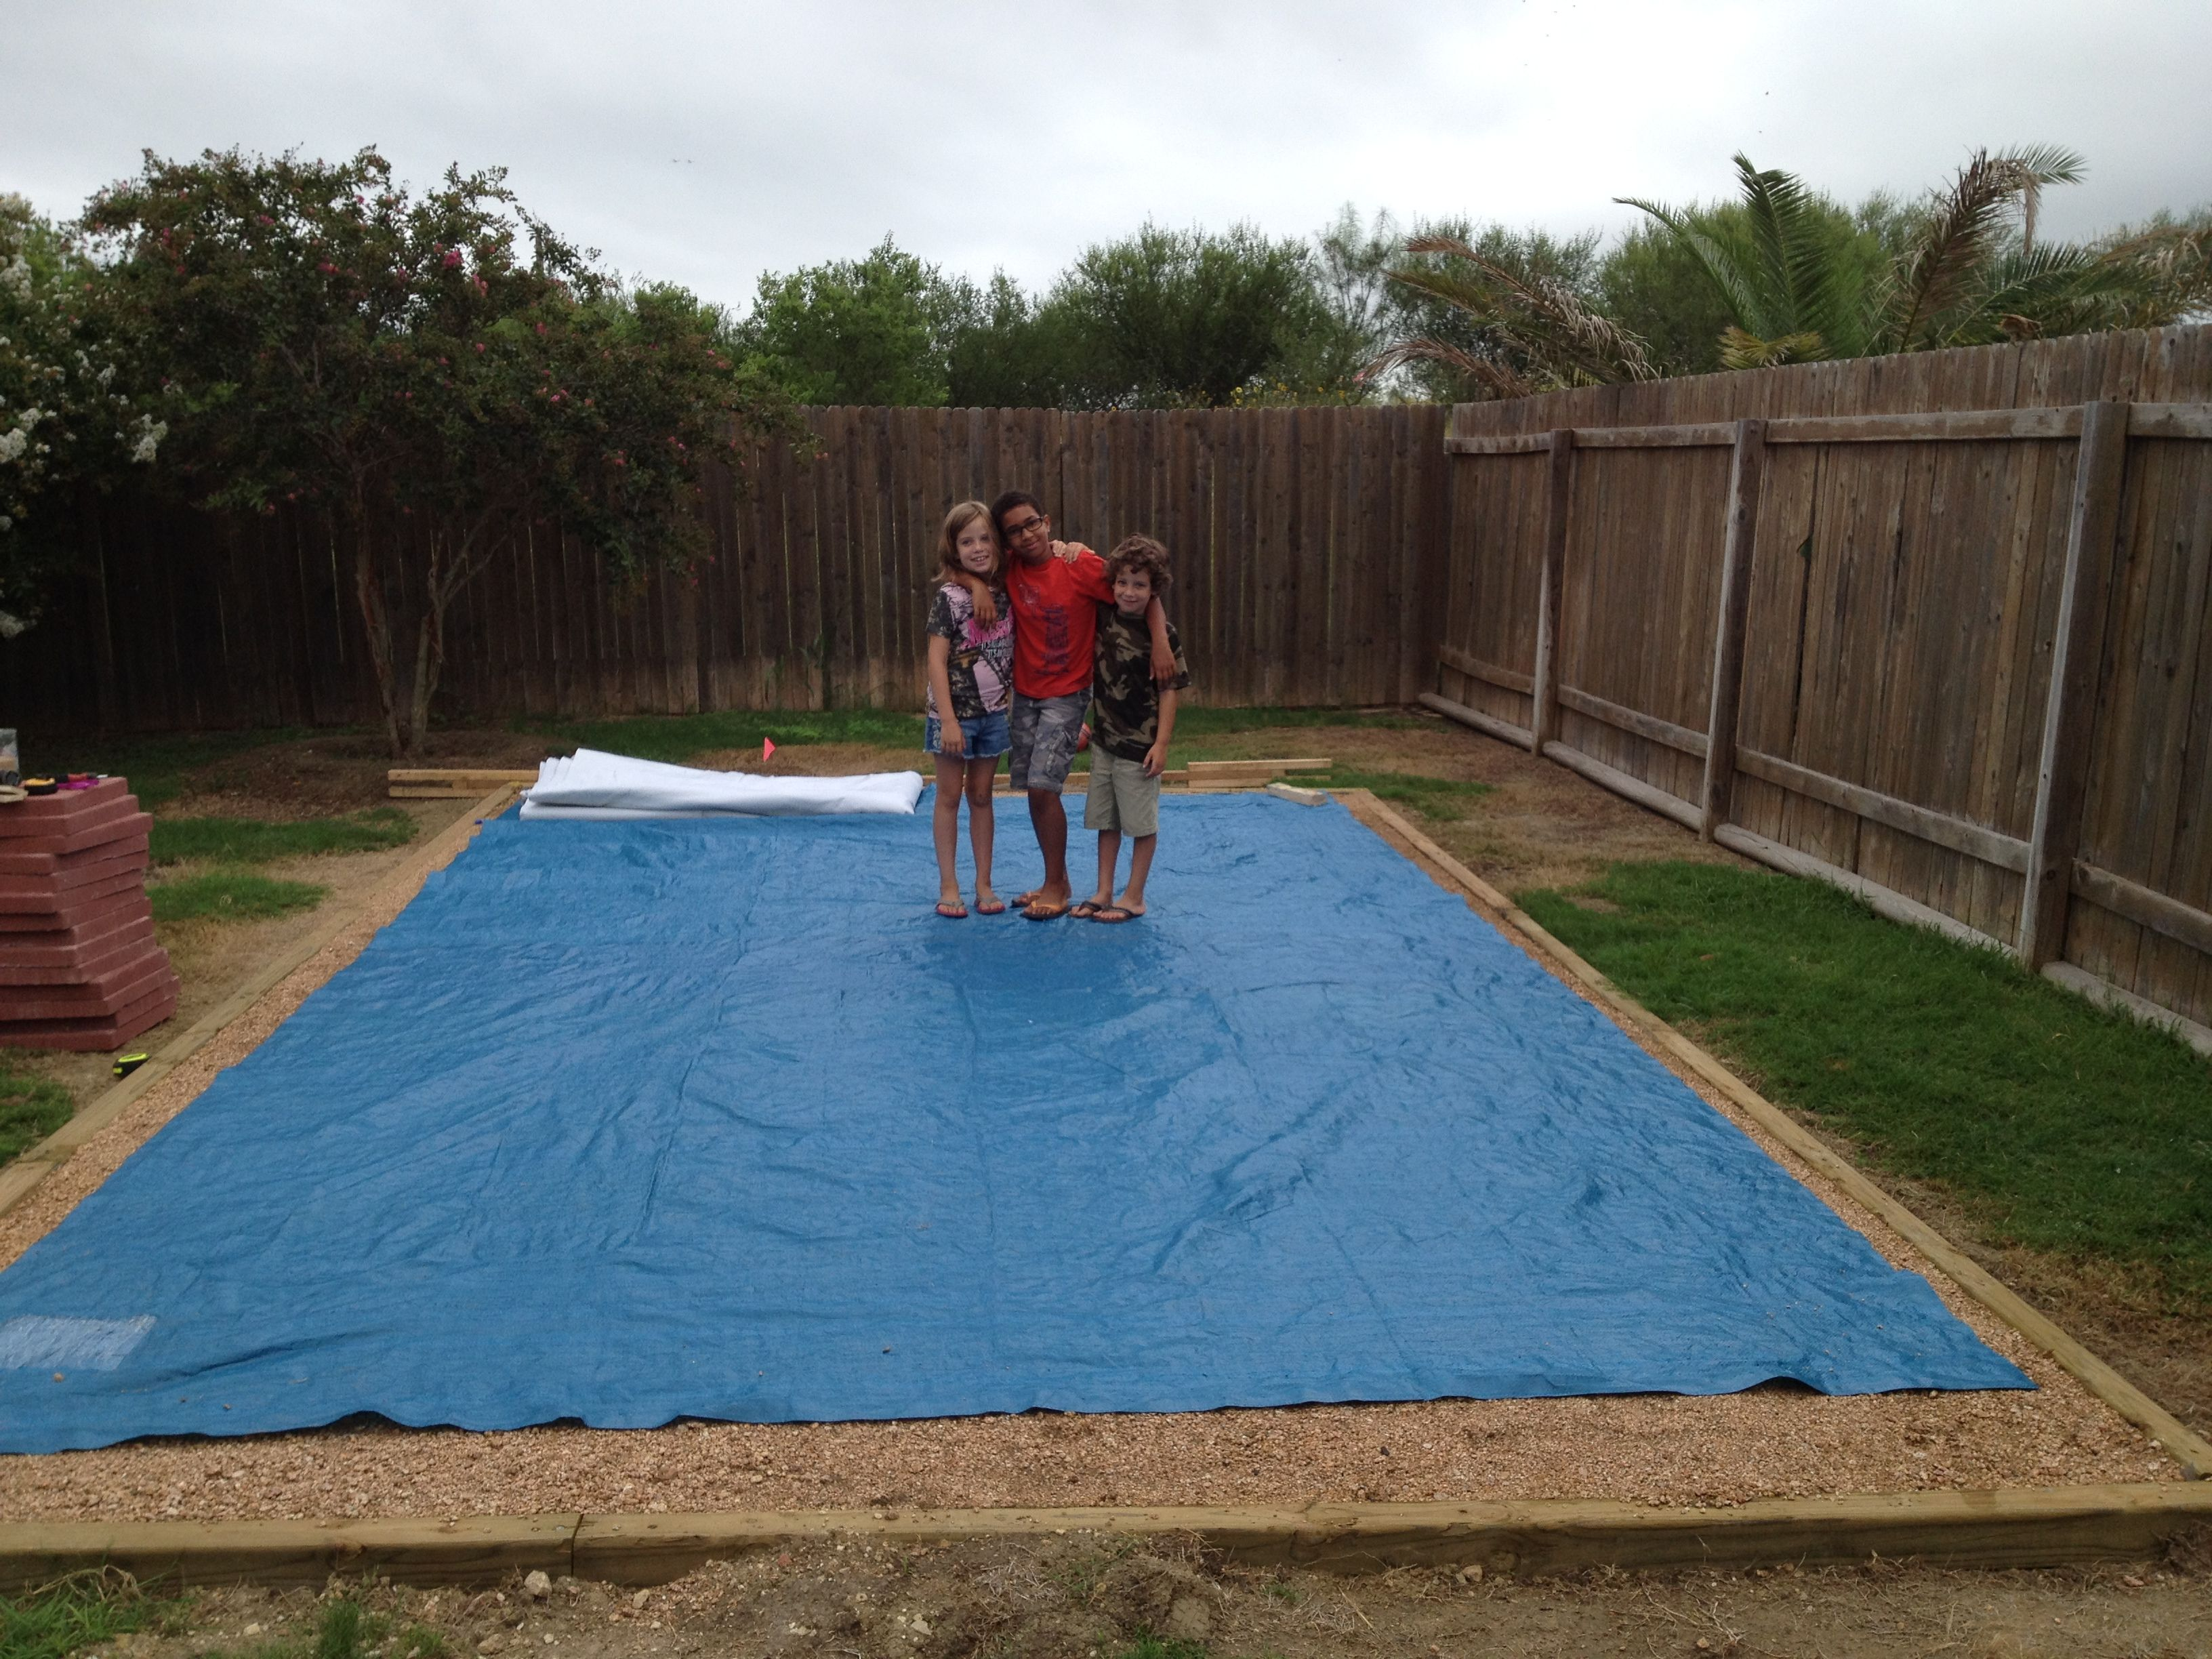 Epic Tarp out getting ready to put gorilla pad down